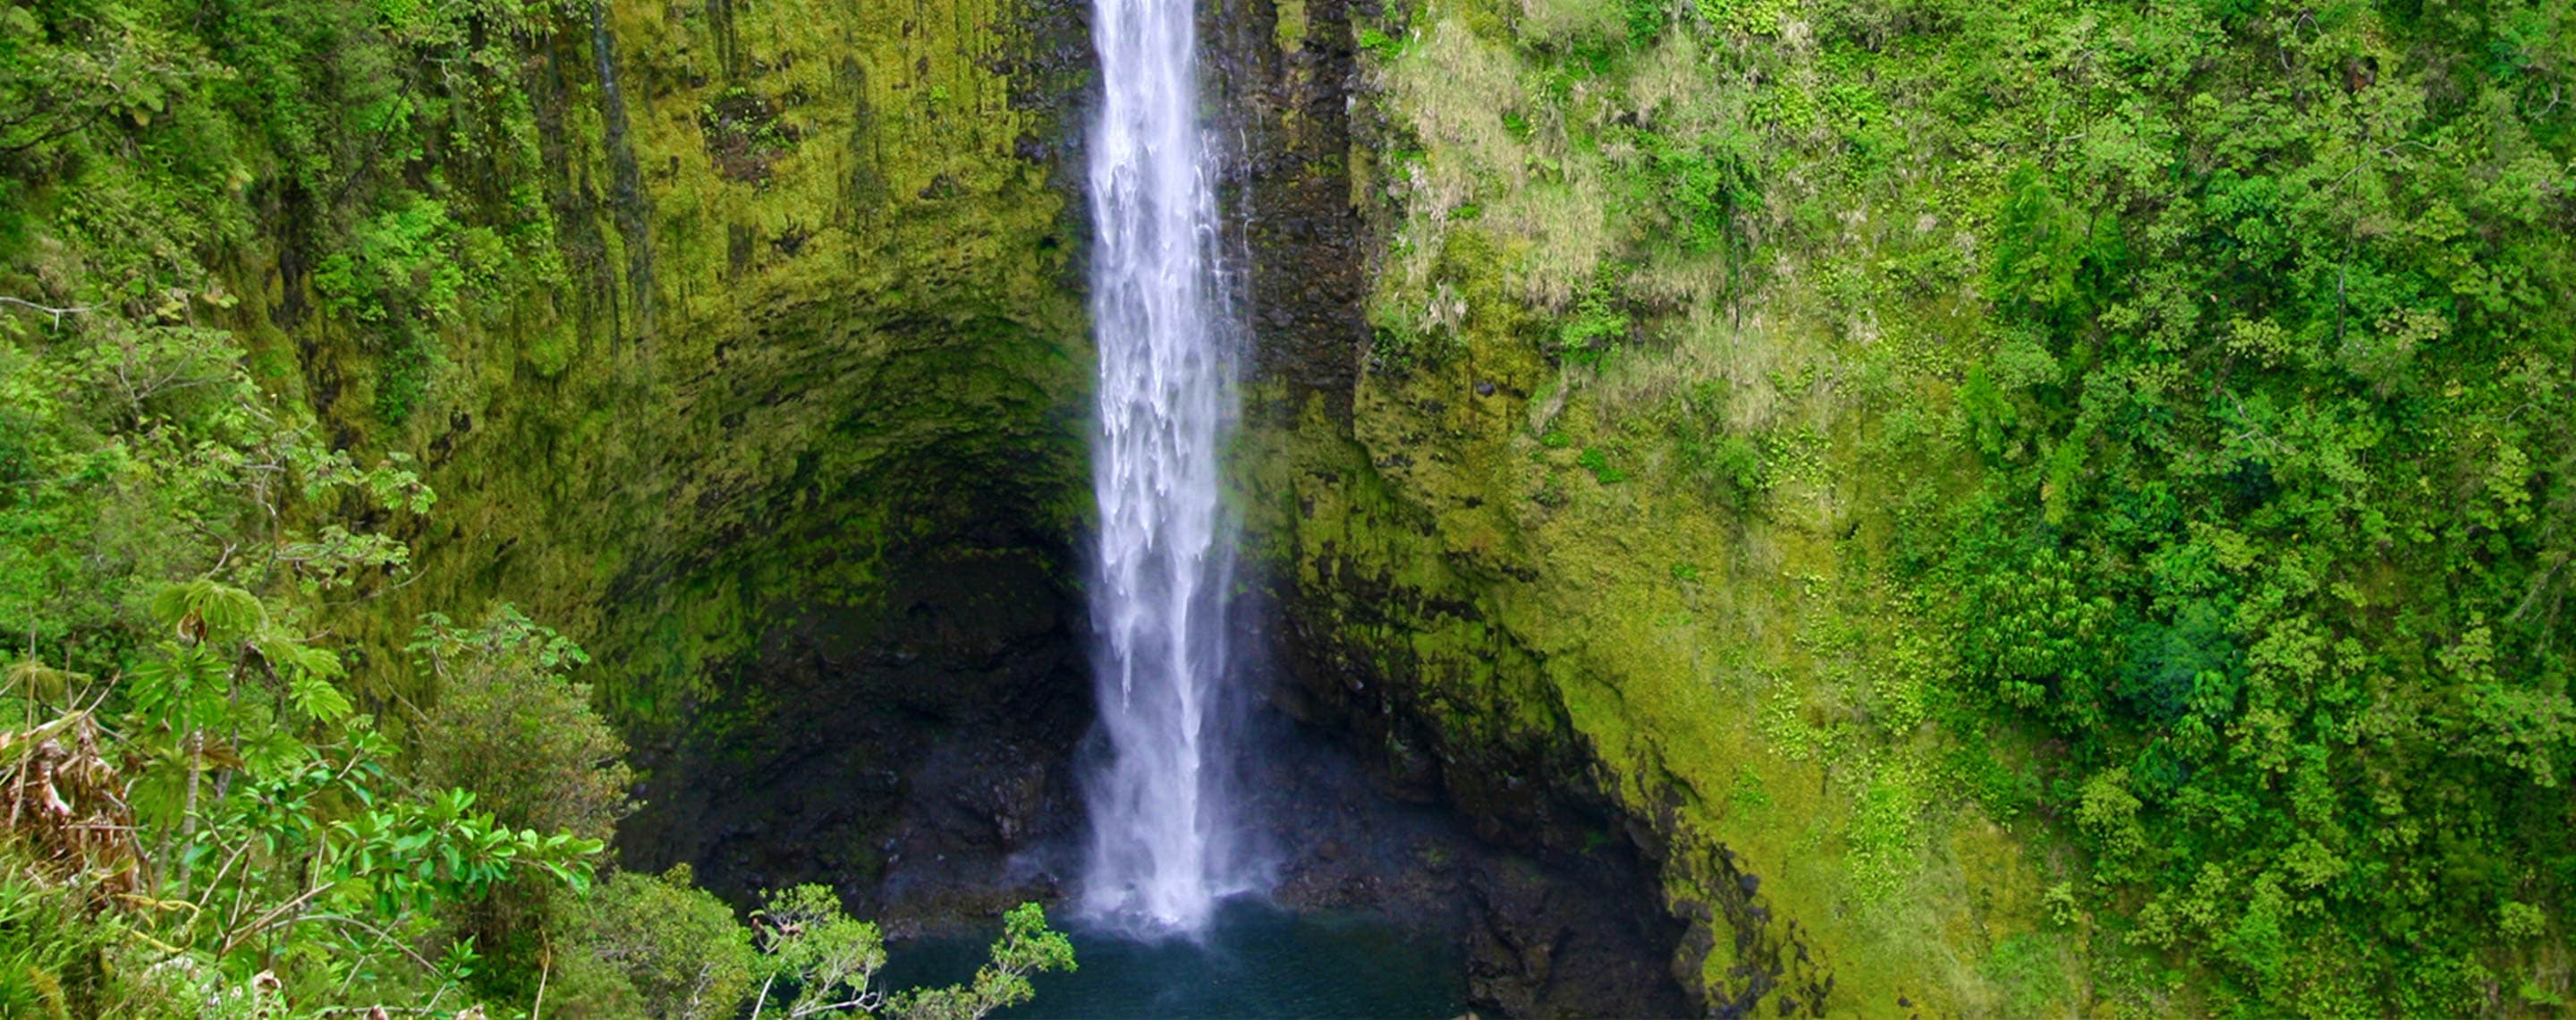 Nature & Outdoor Activities in Big Island Hawaii